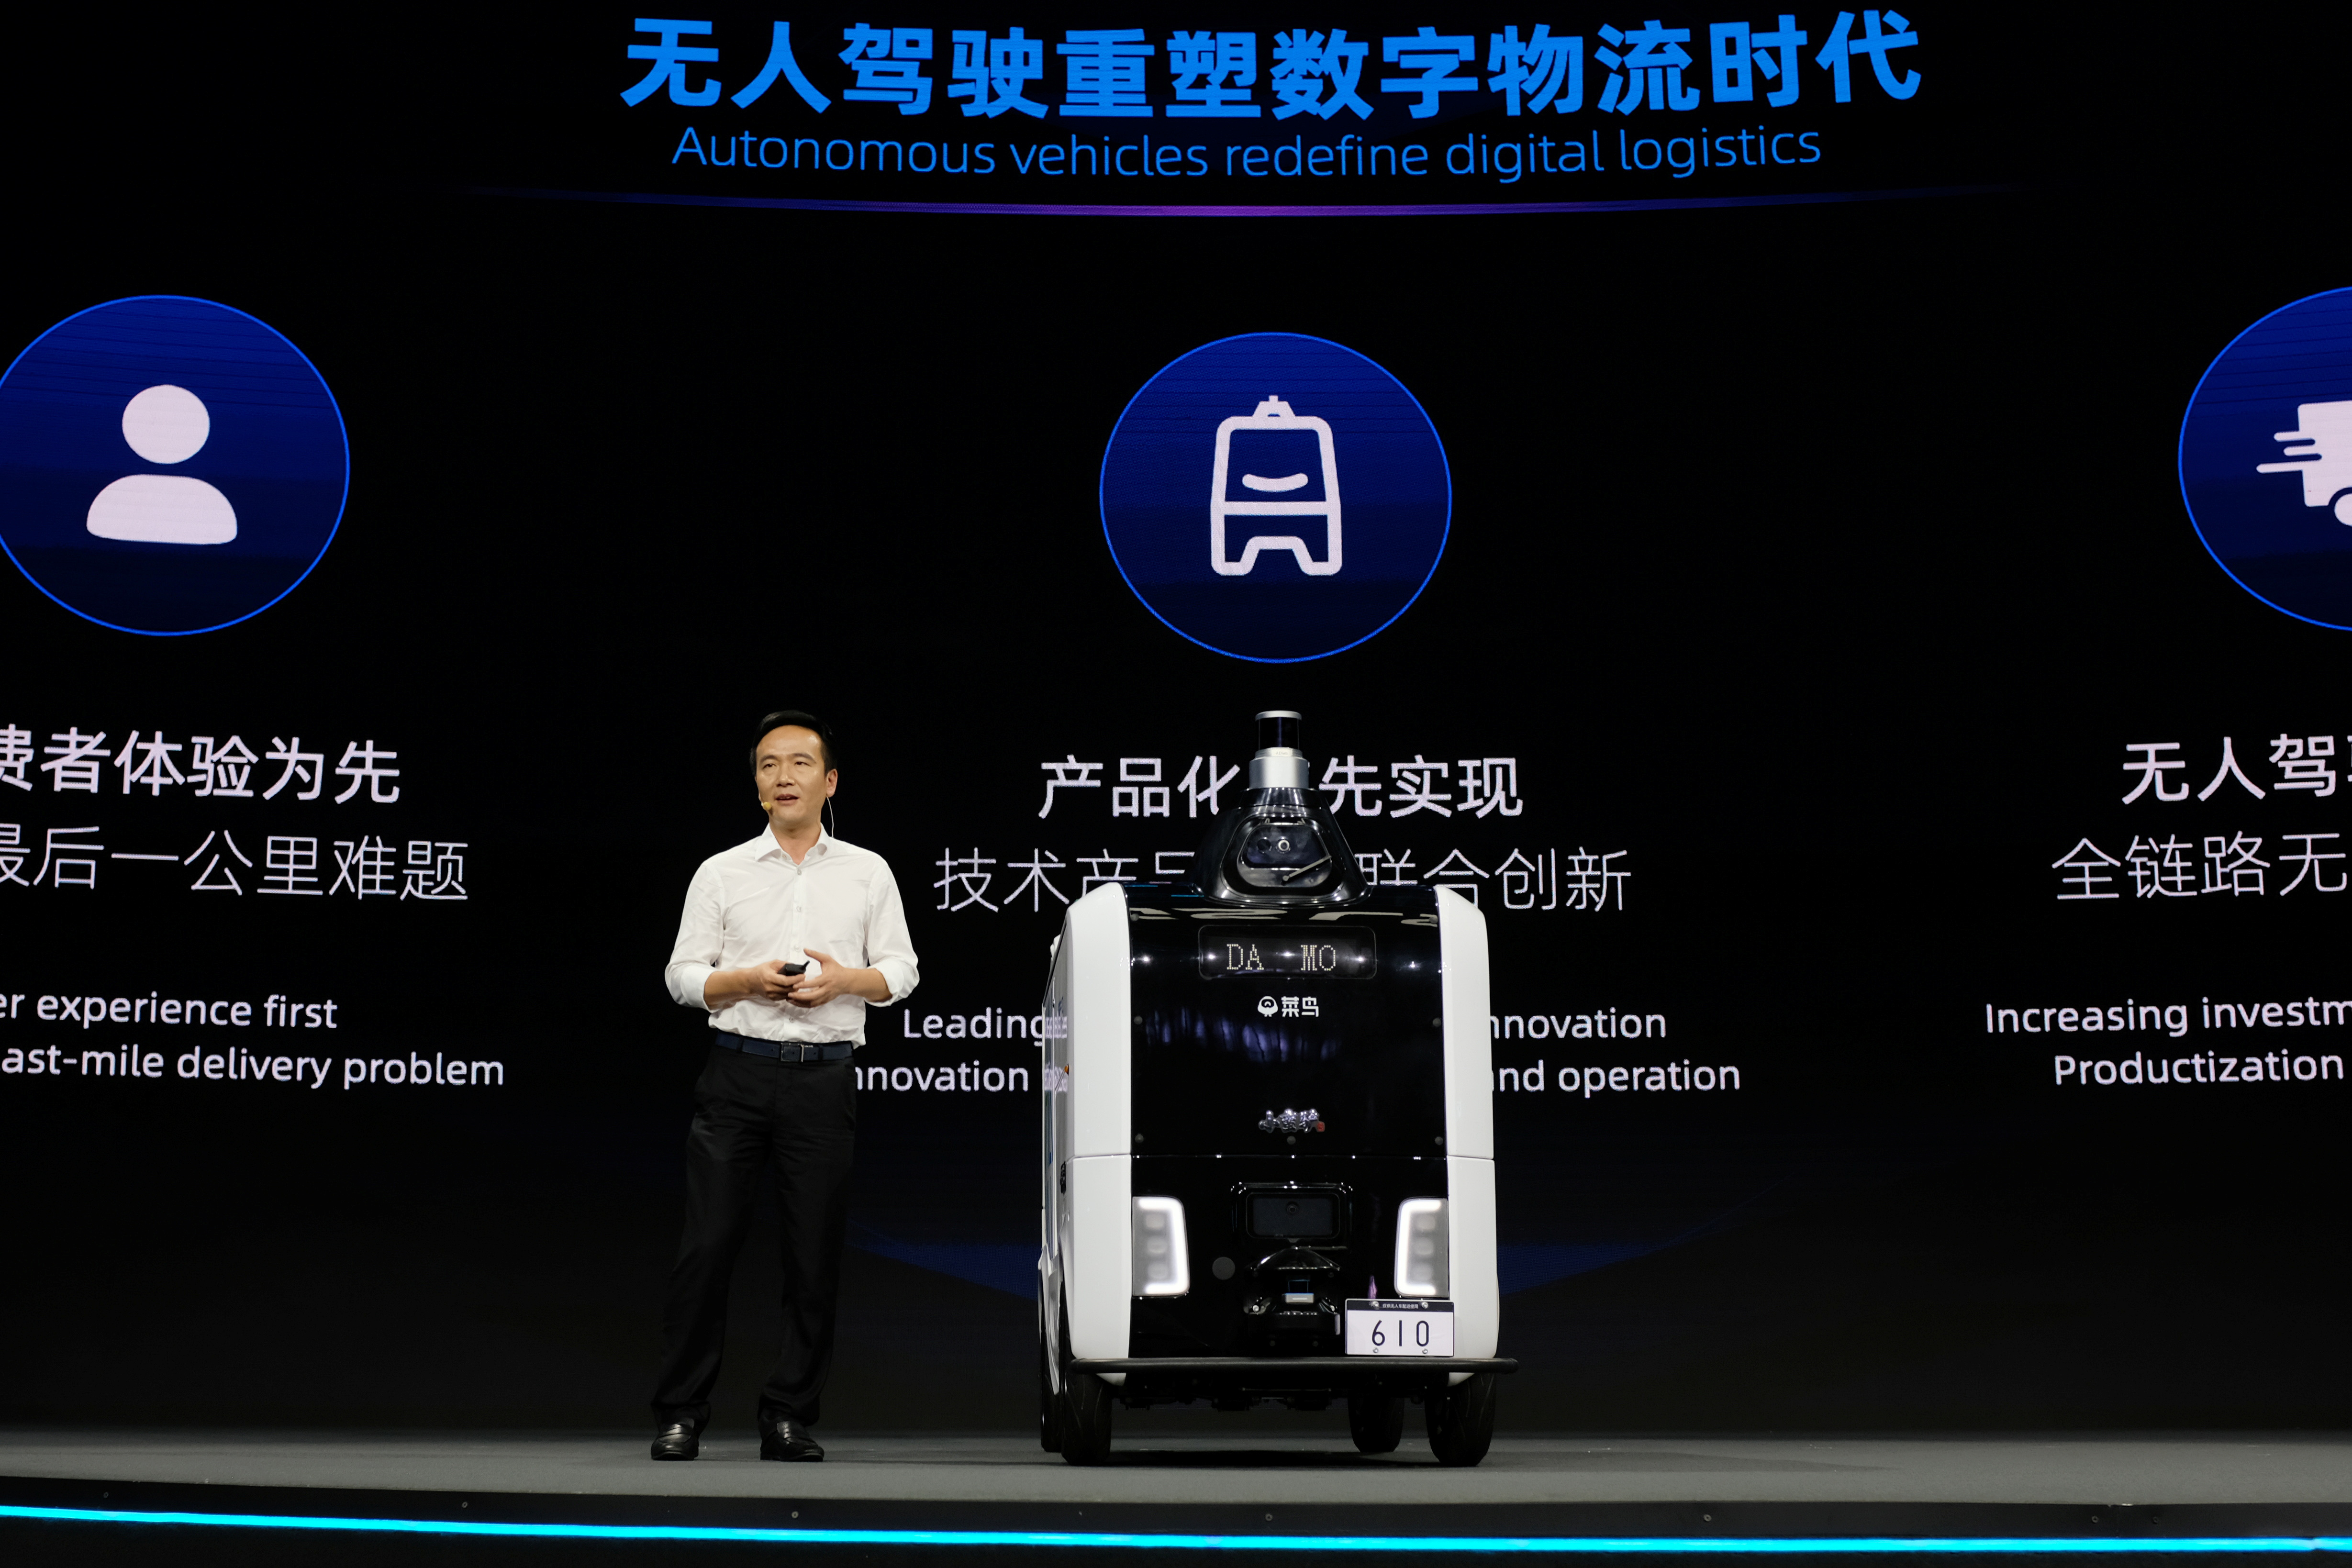 Cheng Li, chief technology officer of Alibaba Group, speaks next to a Cainiao autonomous delivery robot at the Global Smart Logistics Summit organised by Alibaba's logistics arm Cainiao, in Hangzhou, Zhejiang province, China June 10, 2021. REUTERS/Yilei Sun